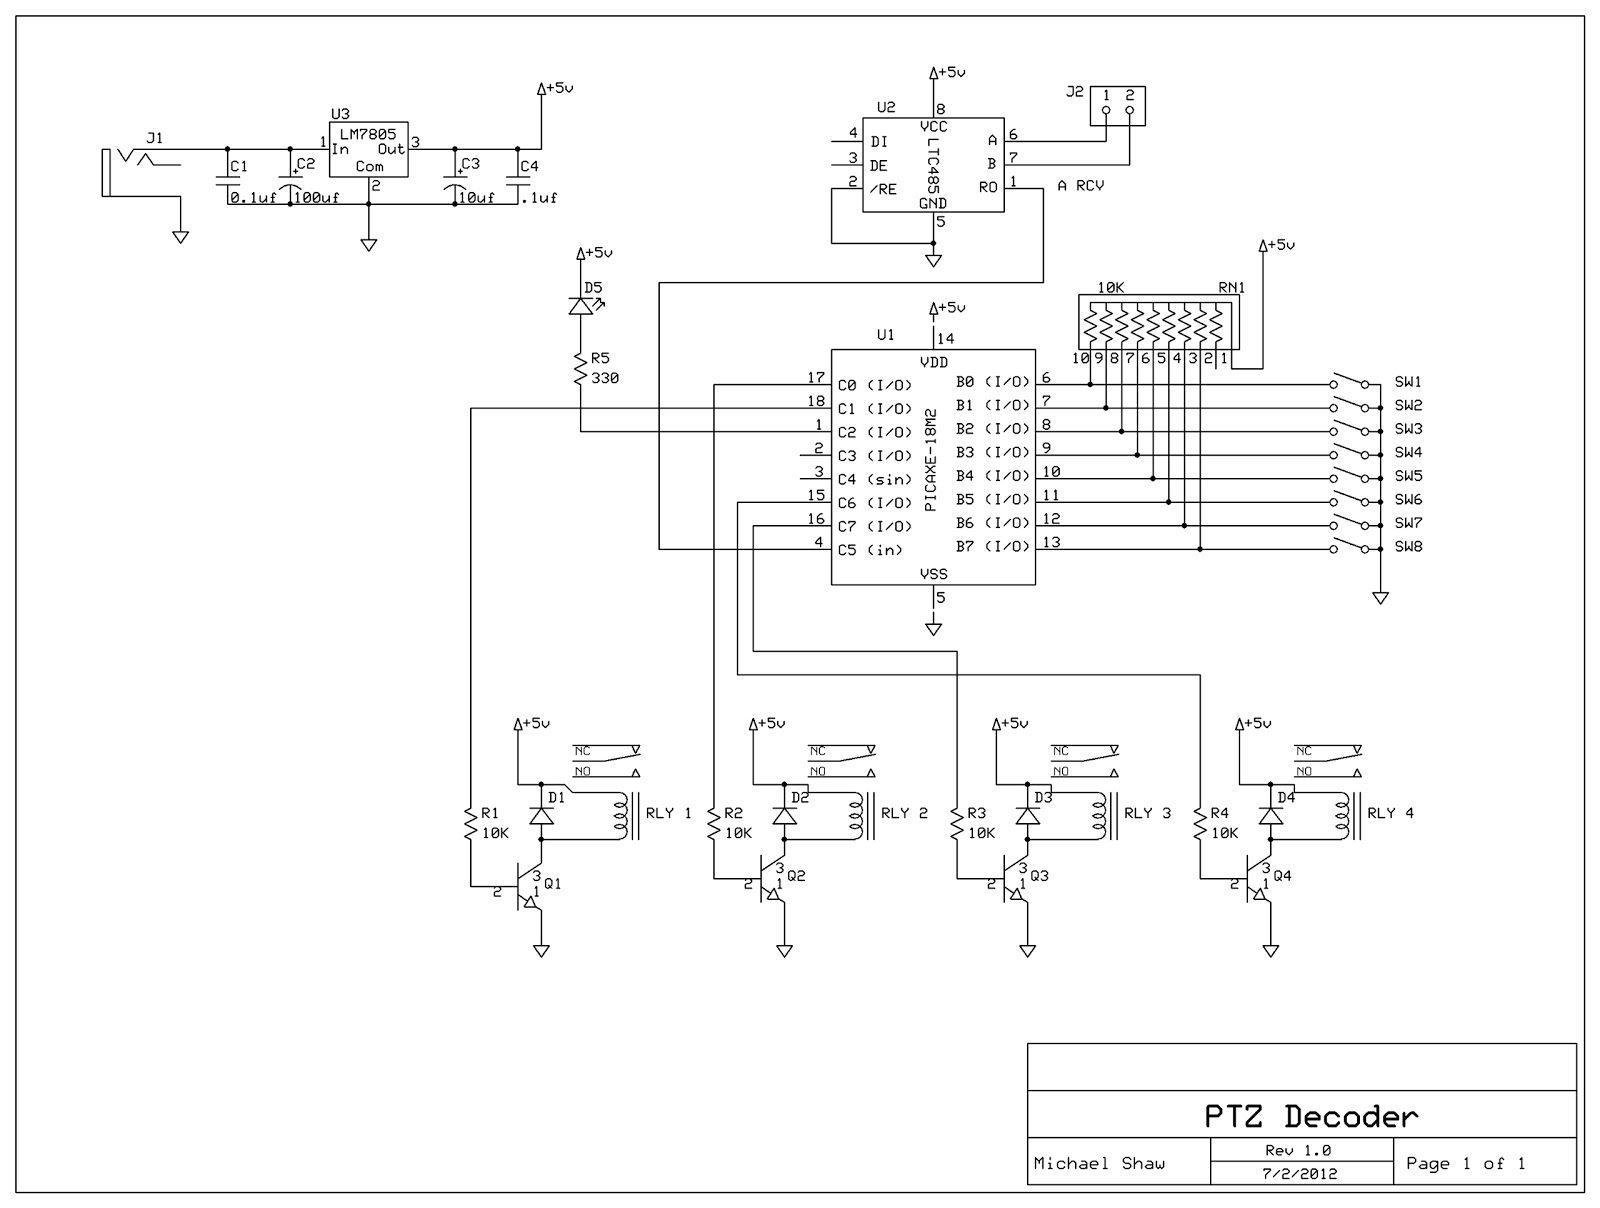 PTZ_Decoder_schmatic  Way Switch Wiring Diagram Led on 3 way switch cover, volume control wiring diagram, circuit breaker wiring diagram, 3 way switch help, 3 way switch troubleshooting, 3 way light switch, 3 way switch schematic, gfci wiring diagram, two way switch diagram, 3 way switch electrical, three switches one light diagram, 3 way switch with dimmer, easy 3 way switch diagram, 3 way switch installation, 3 way switch getting hot, 3 way switch lighting, four way switch diagram, 3 wire switch diagram, 3 way switch wire,